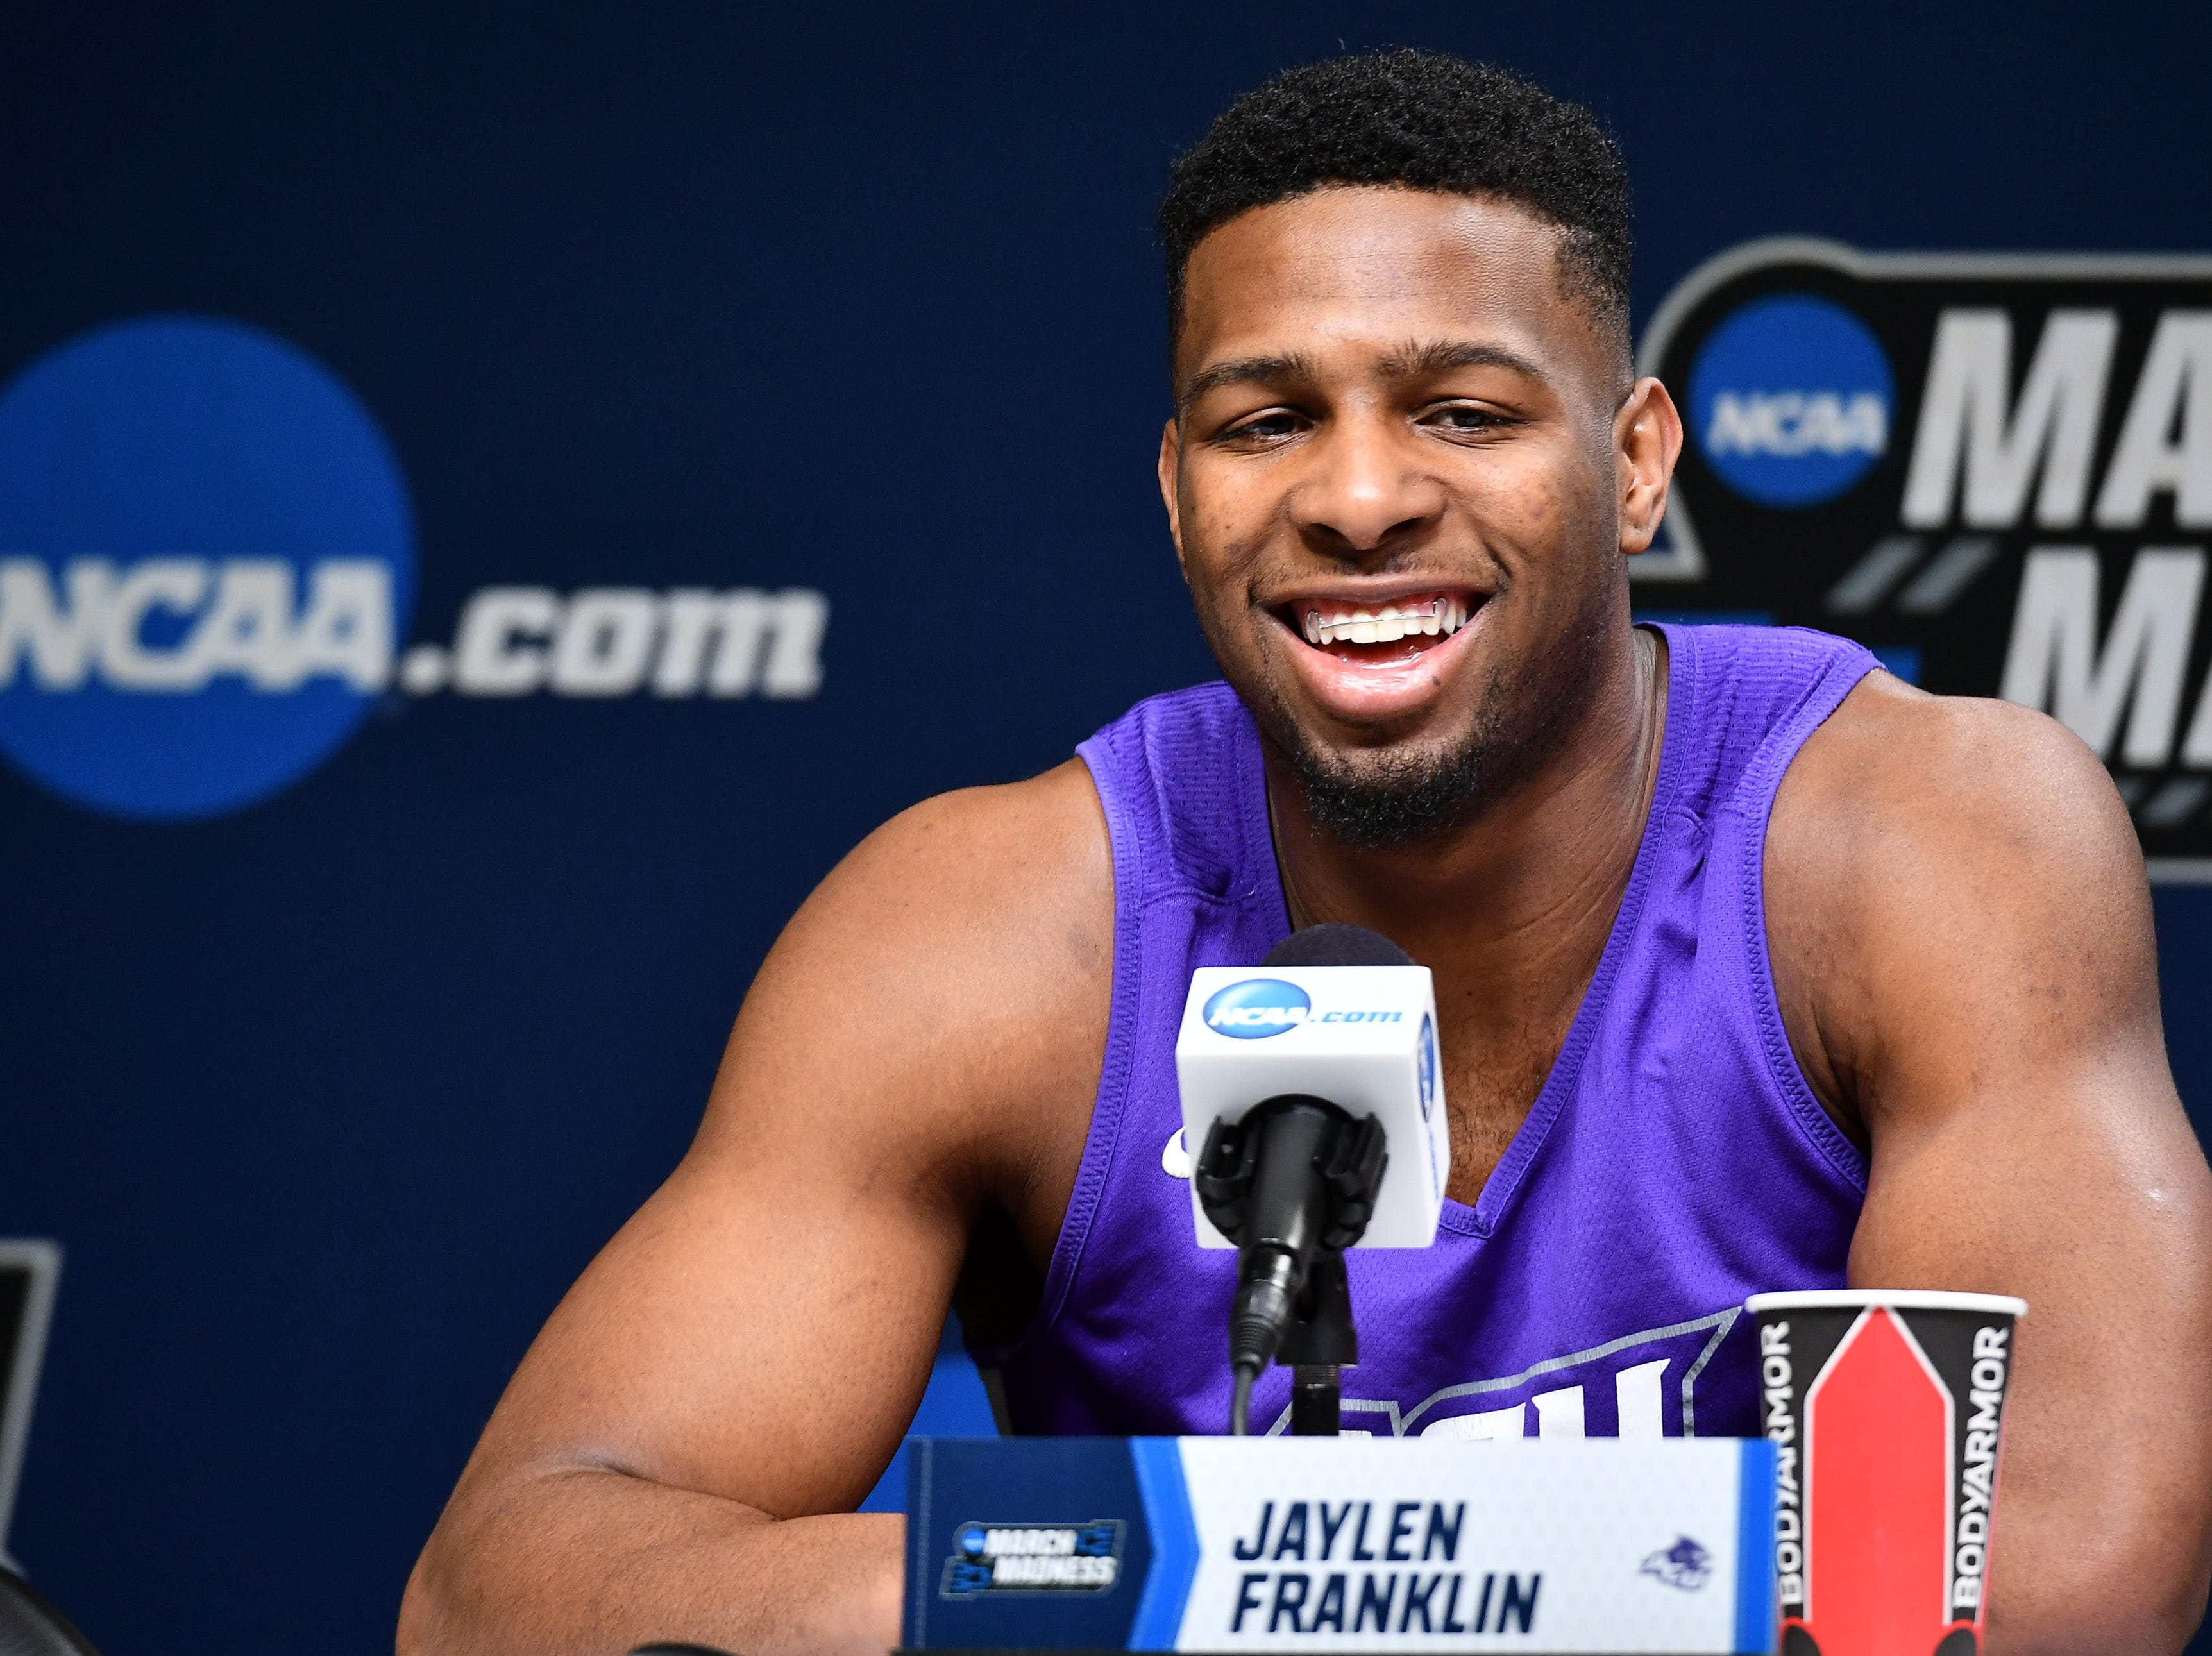 Mar 20, 2019; Jacksonville, FL, USA; Abilene Christian Wildcats guard Jaylen Franklin (0) talks to the media during practice day before the first round of the 2019 NCAA Tournament at Jacksonville Veterans Memorial Arena. Mandatory Credit: John David Mercer-USA TODAY Sports